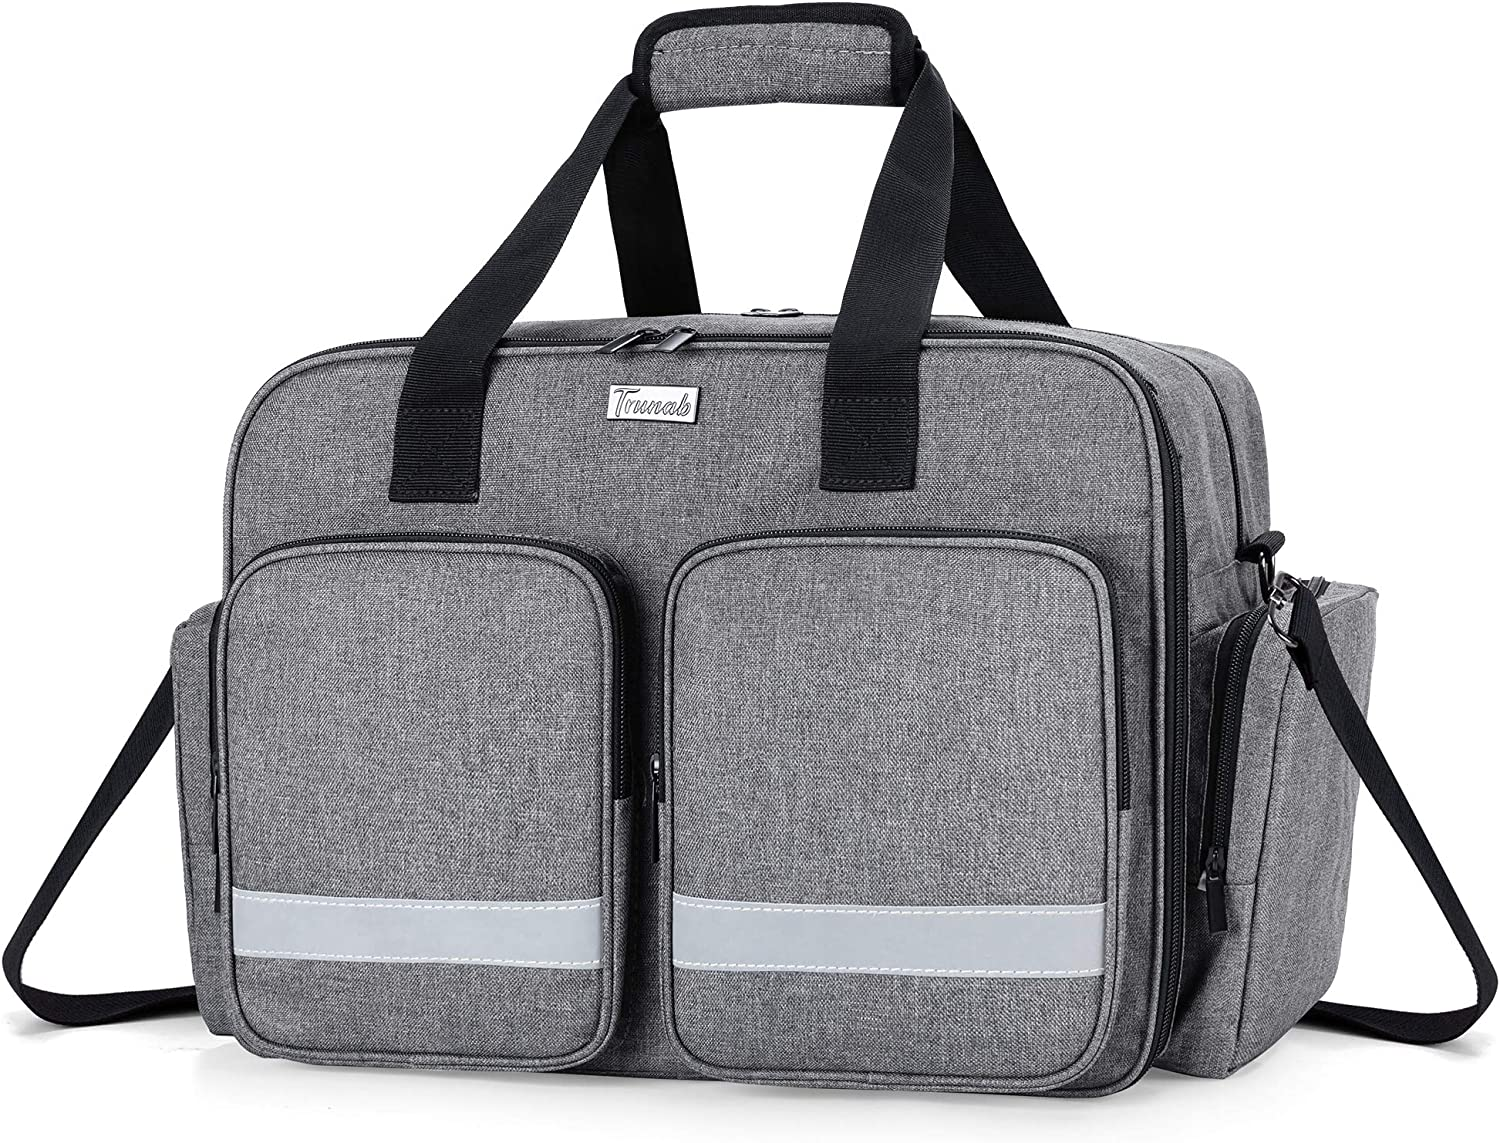 Trunab Medical Supplies Bag Empty, Home Health Nurse Bag with Multiple&Large Compartment, Medical Shoulder Bag for Physical Therapists, Paramedic, Health Care Professionals, Grey - Patented Design